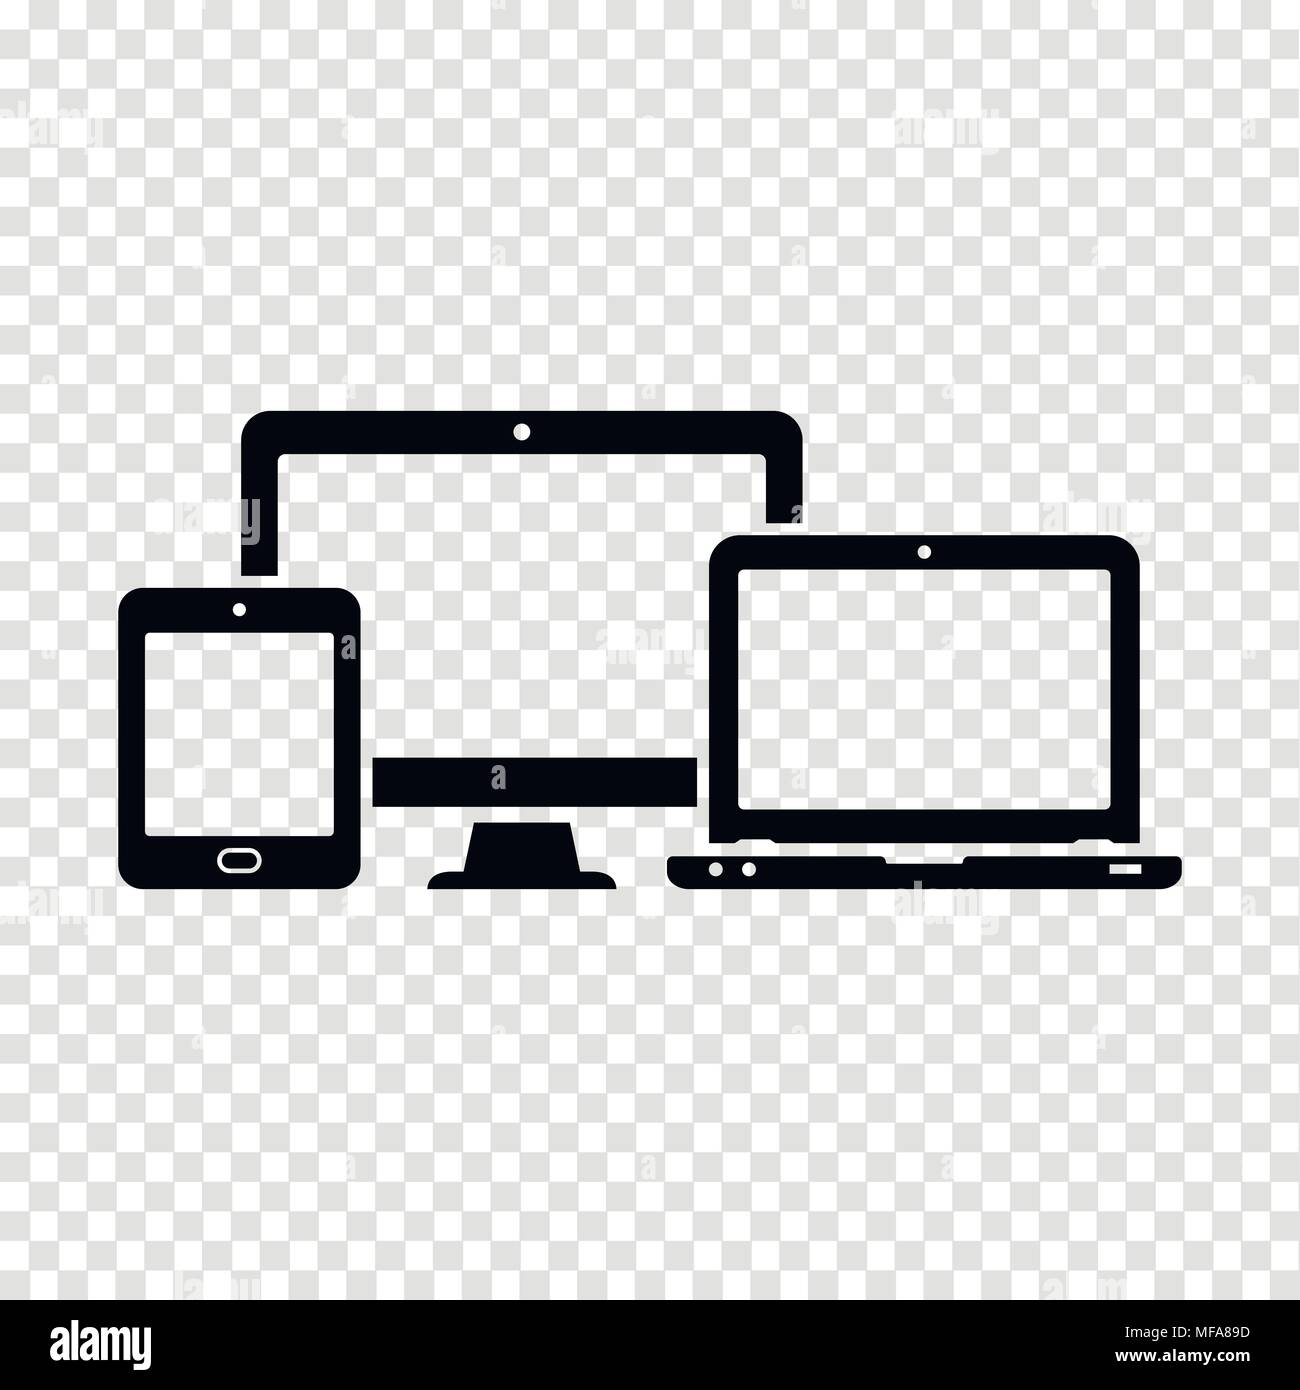 Electronic Devices Icons On Transparent Background Stock Vector Art